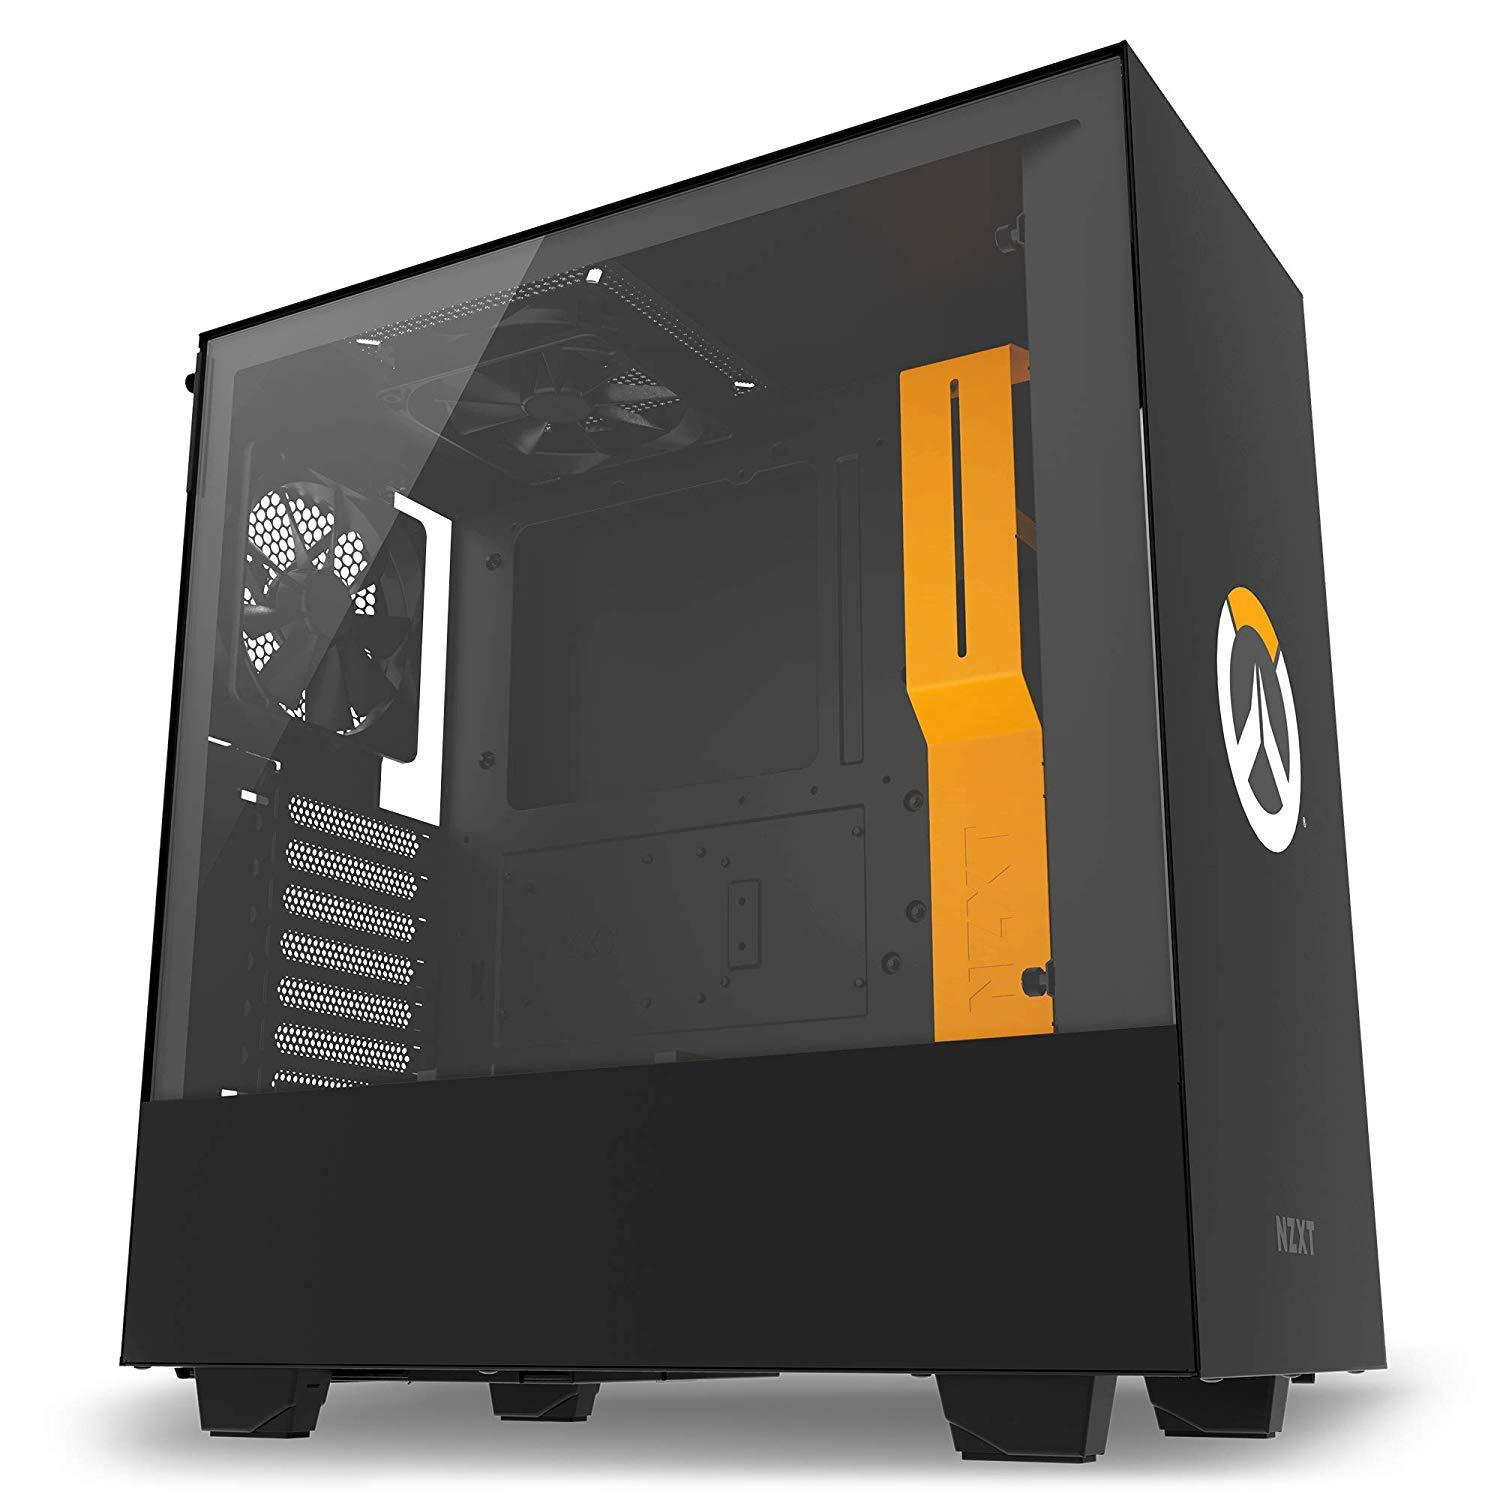 NZXT H500 ATX Mid Tower Case - Overwatch Edition